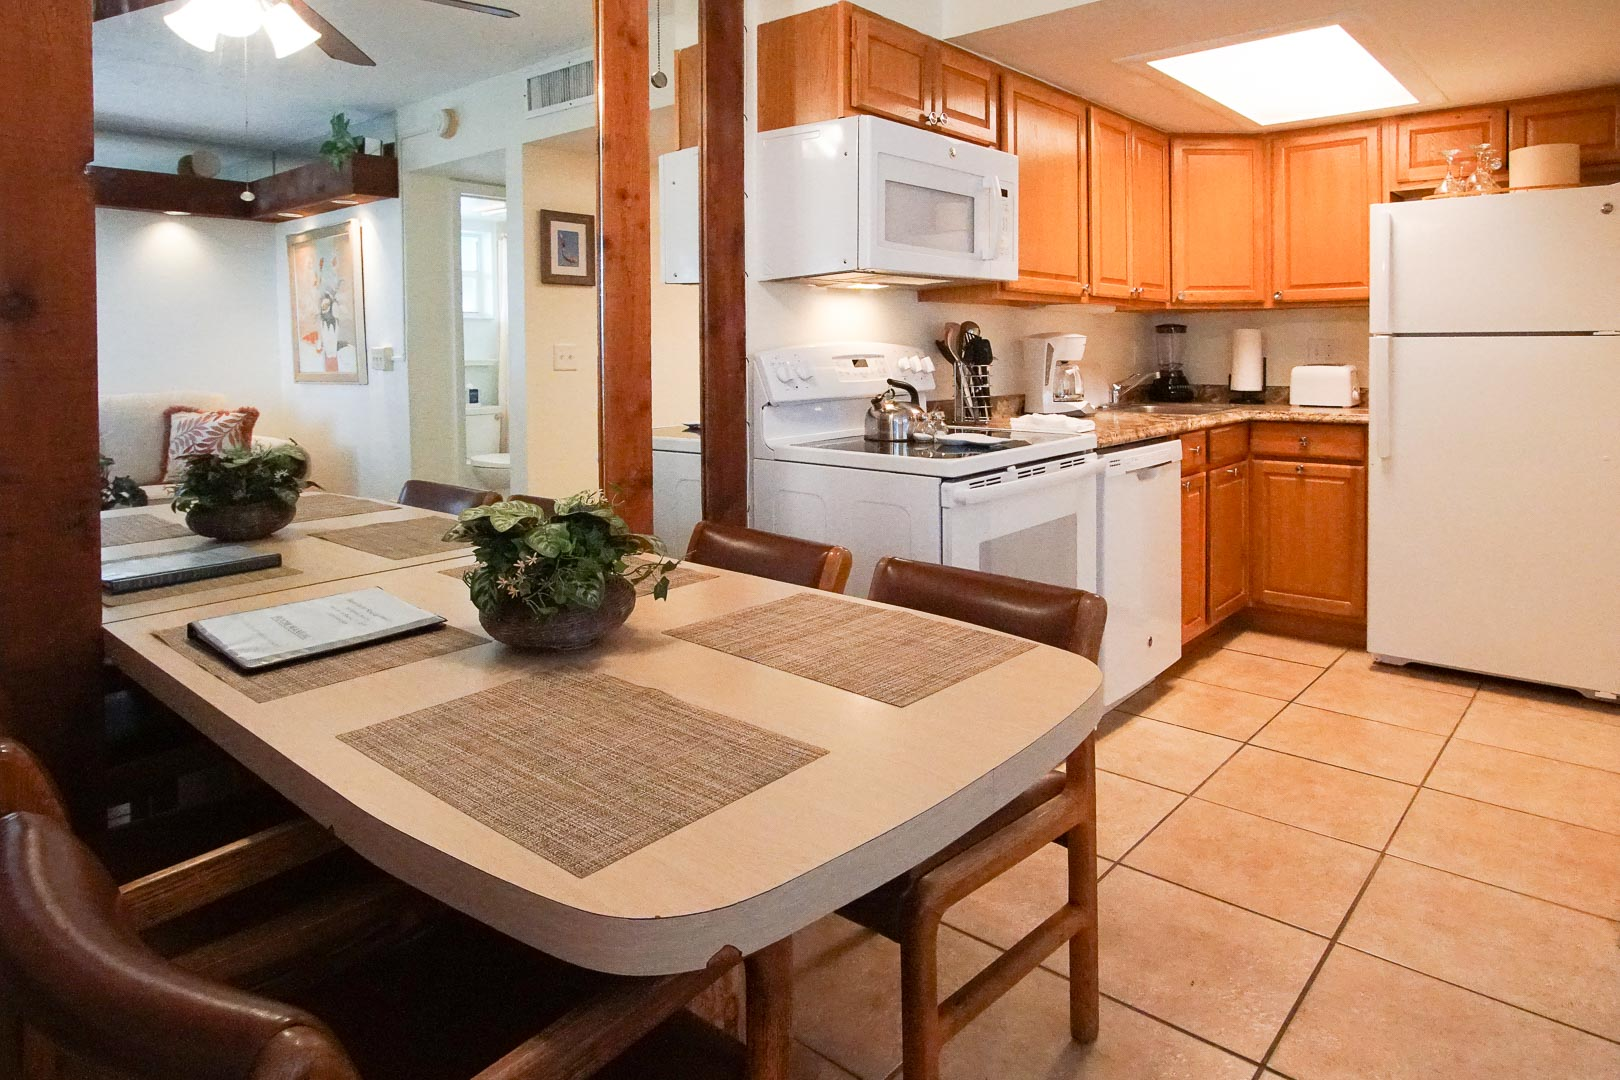 A spacious kitchen area at VRI's Sand Dune Shores in Florida.